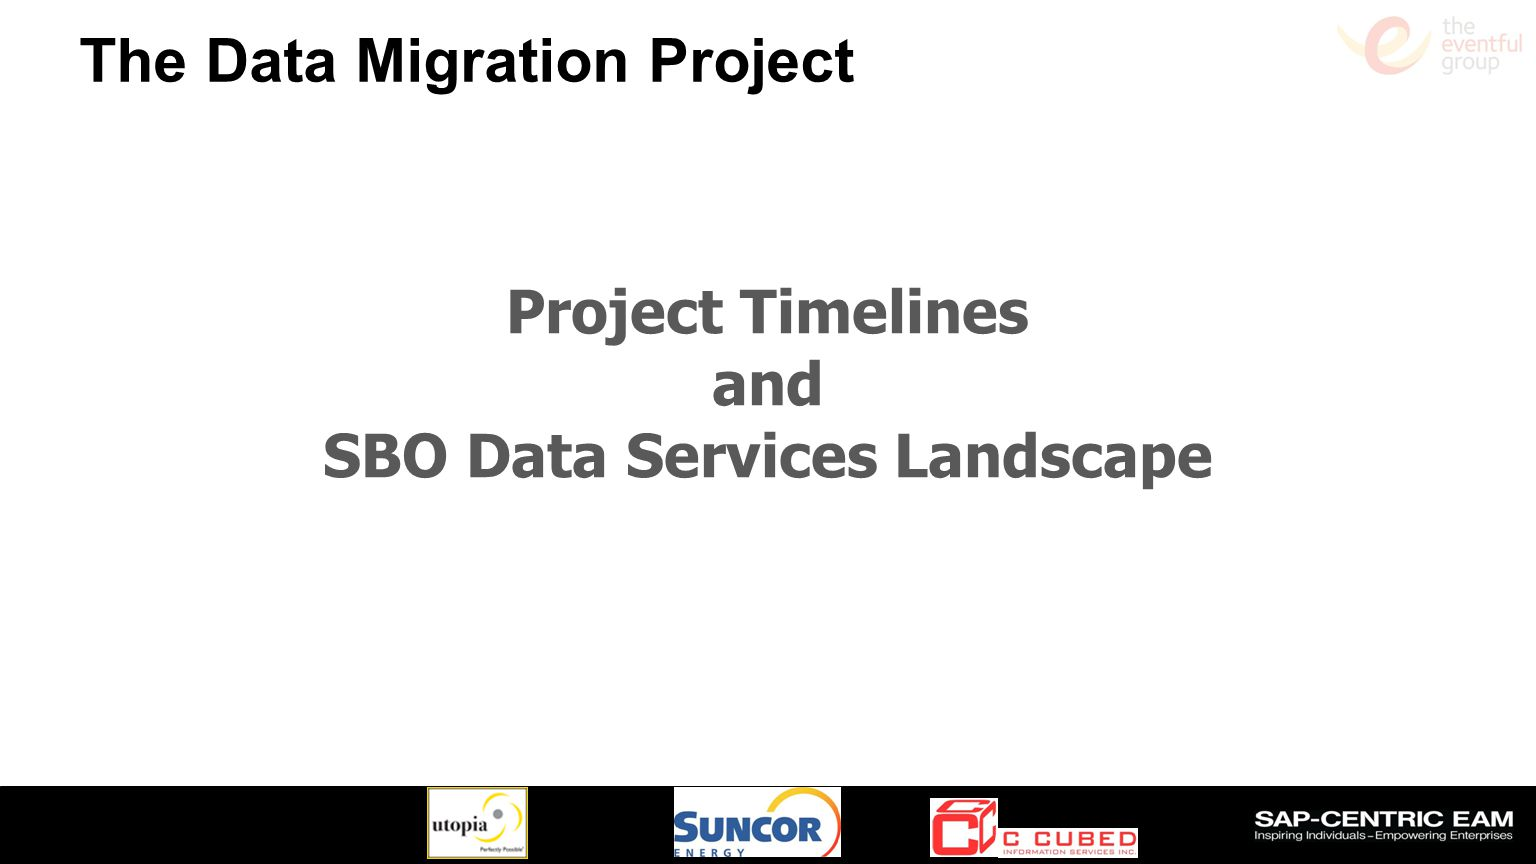 Project Timelines and SBO Data Services Landscape